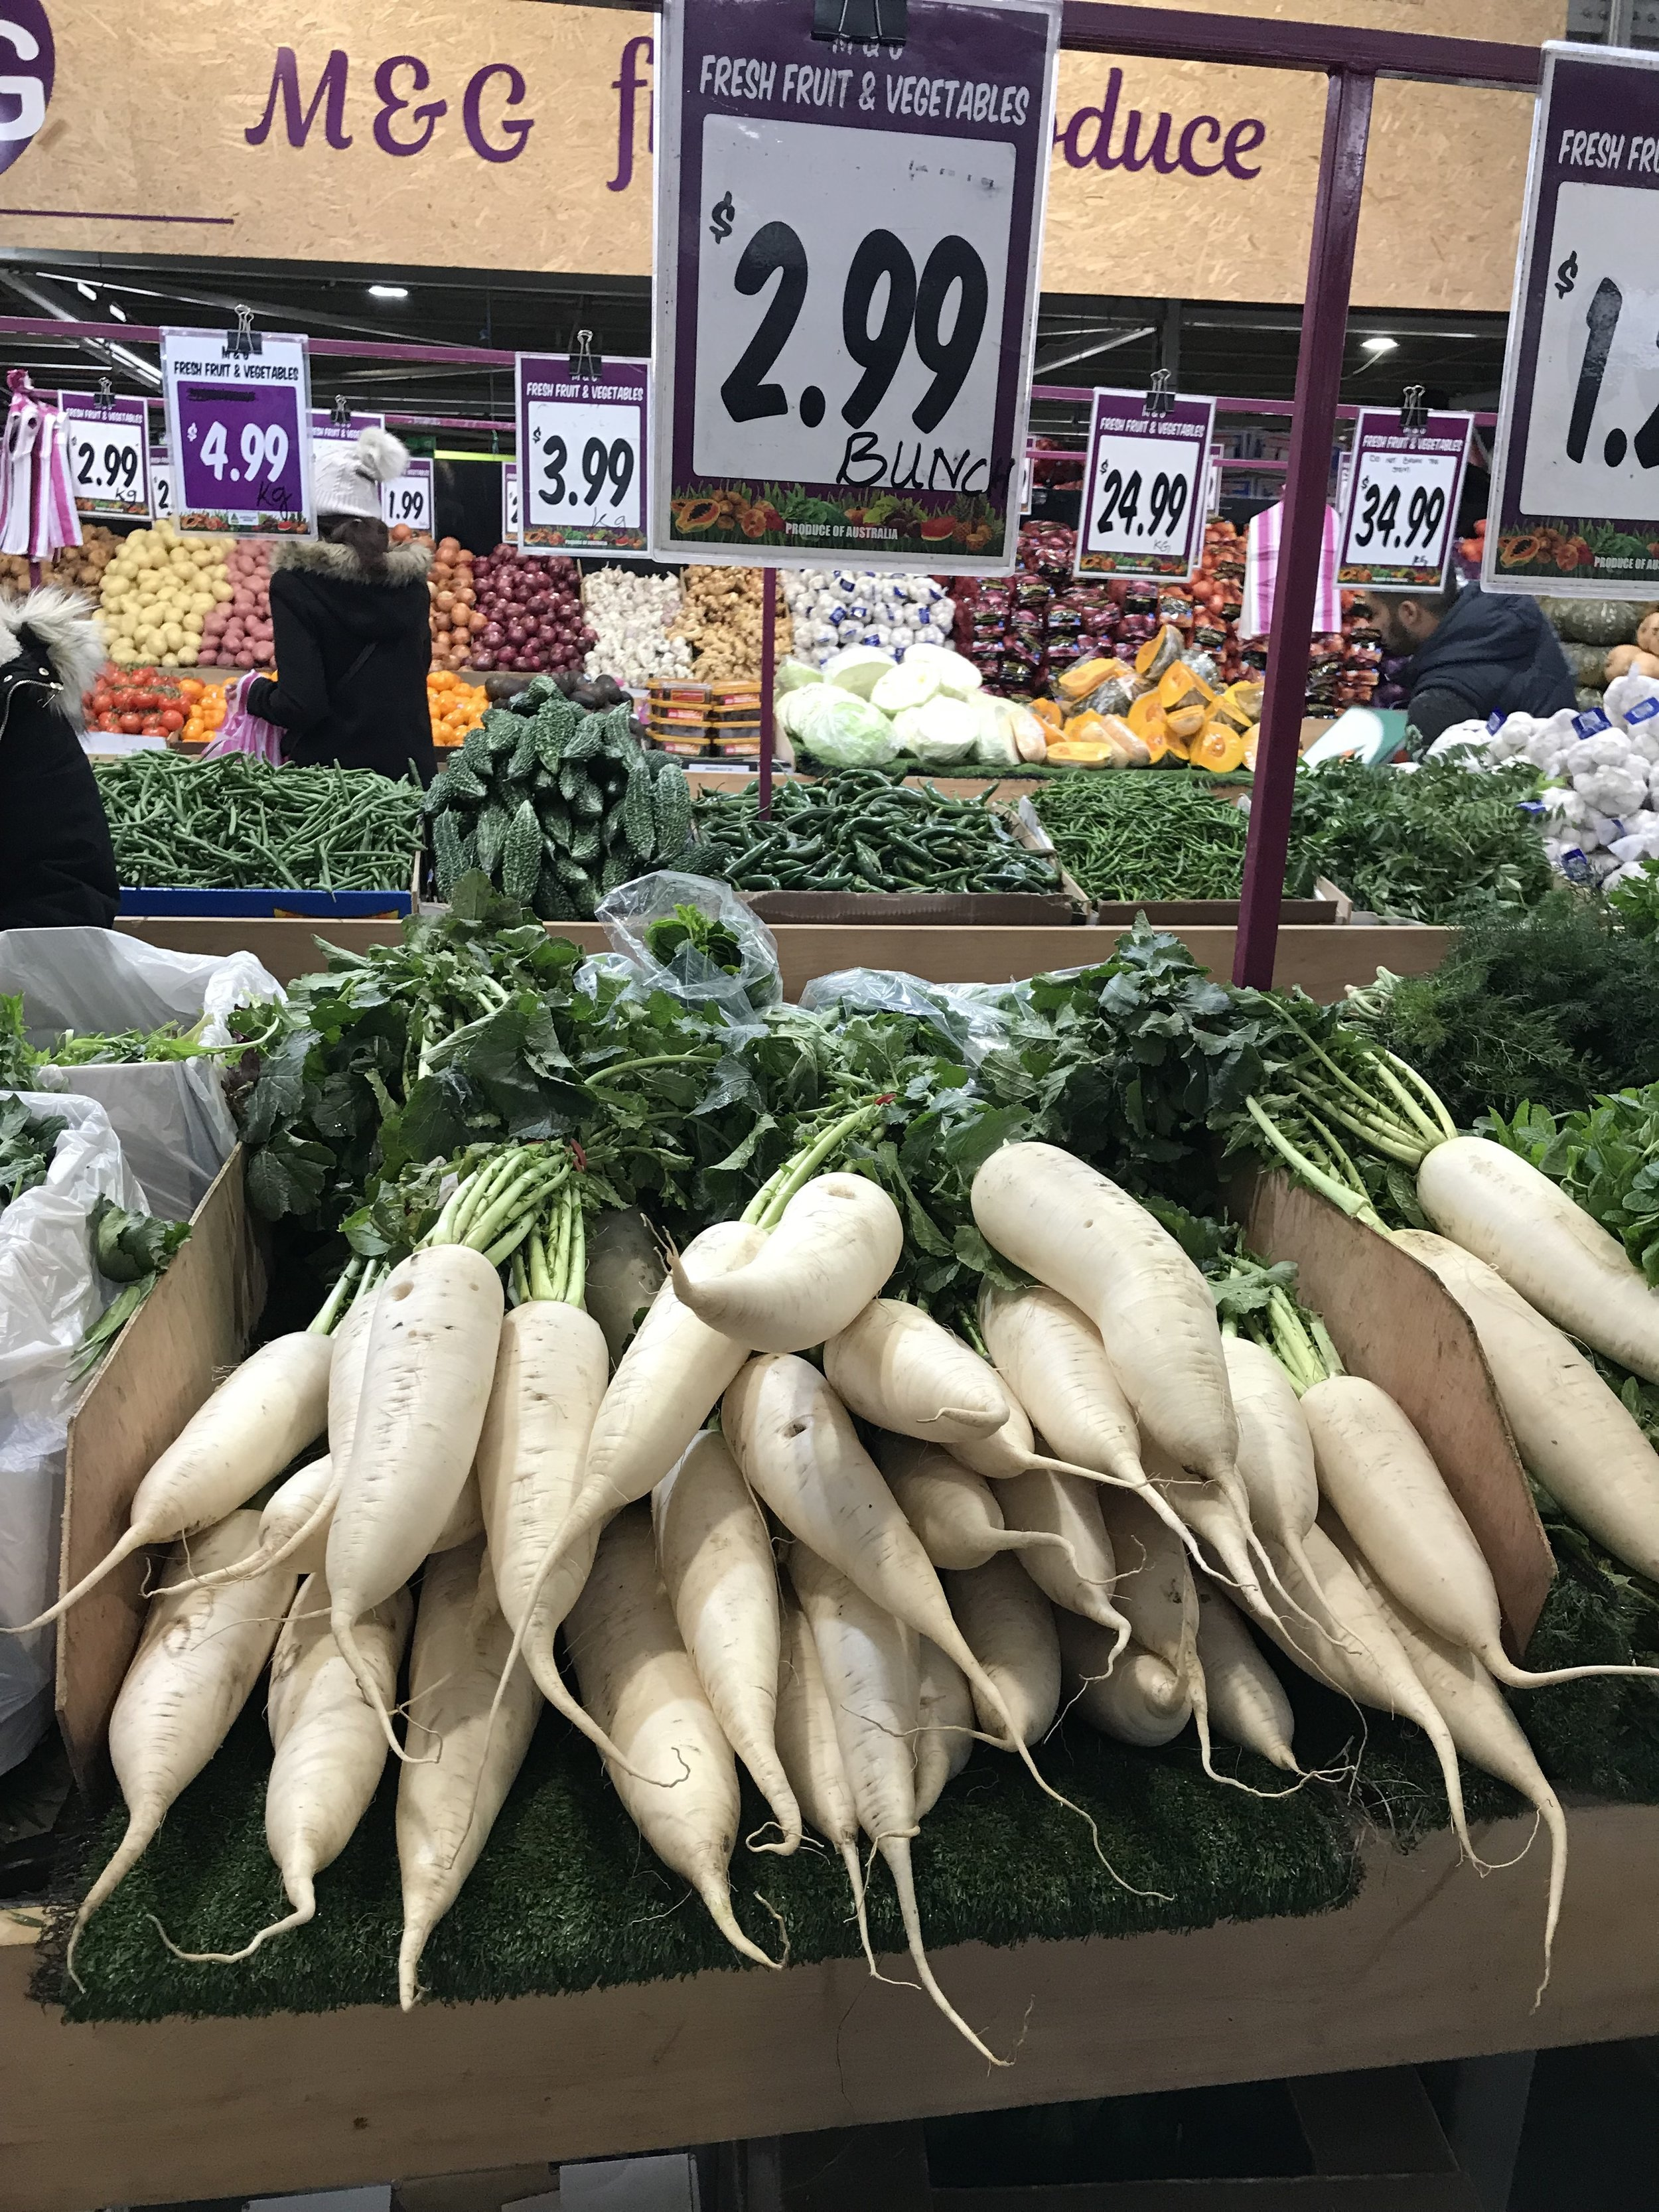 - Daikon or daikon radish is grown and used by local Japanese, Chinese, Hindus, Panjabis and Malaysians amongst others, who all have long history as agriculturalists.Why aren't myrnong, grown by the descendants of the local Aboriginal Woiwurrung, available at the market?We would argue because the Woiwurrung were not agriculturalists and so there is no continuing culture that would result in their descendants in being myrnong market gardeners today.